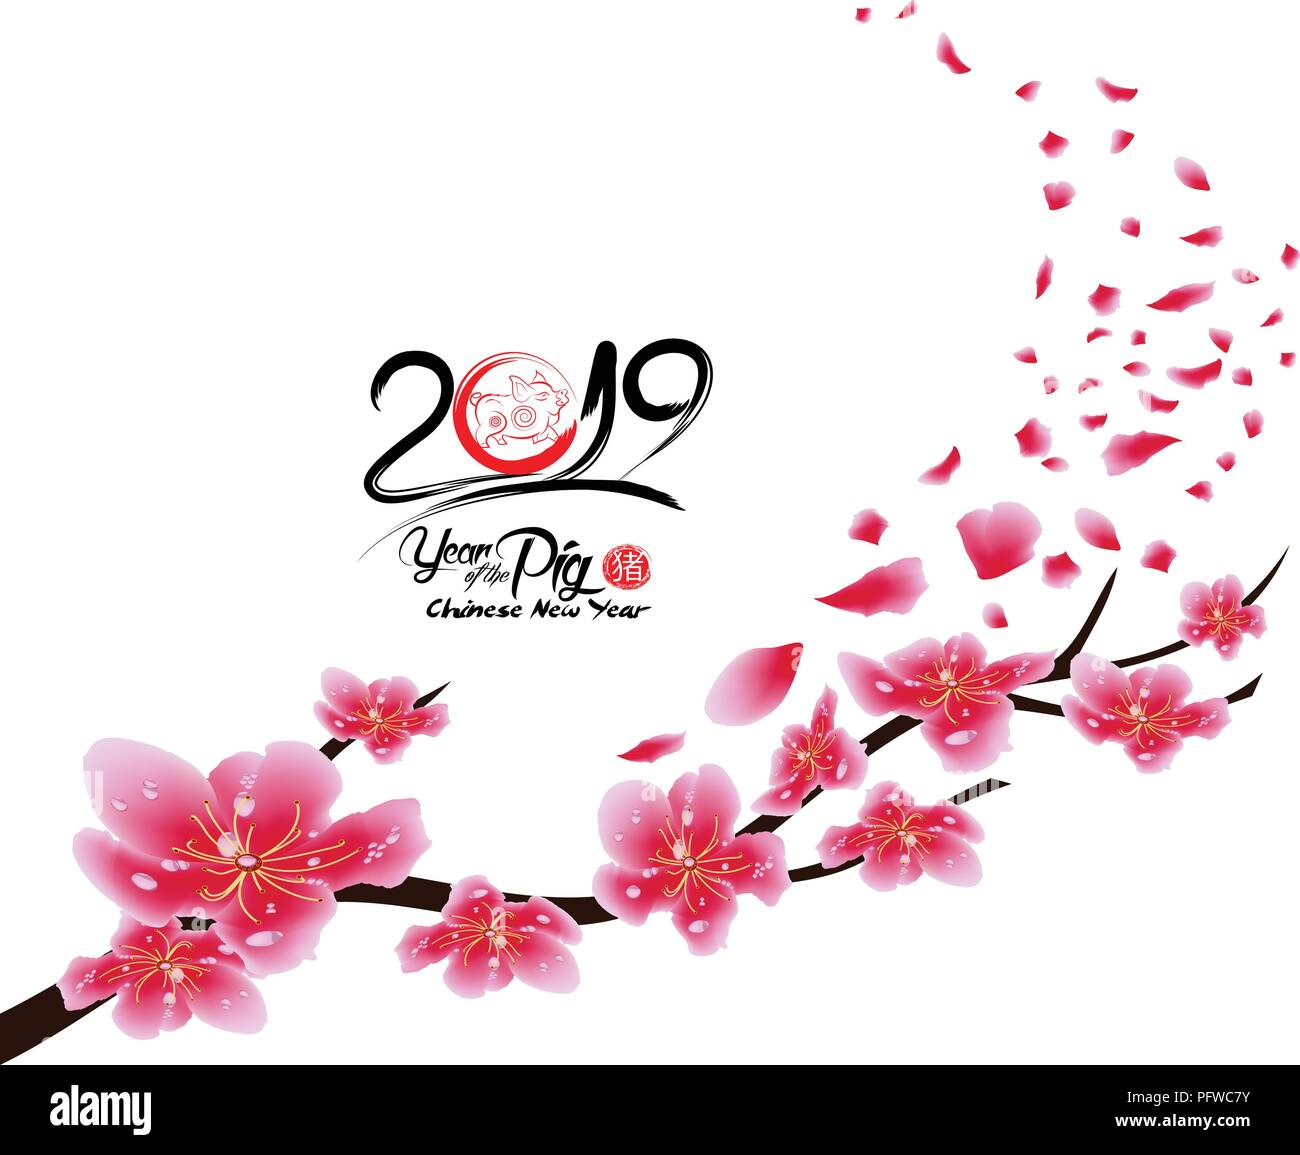 sakura flowers background cherry blossom isolated white background chinese new year hieroglyph pig